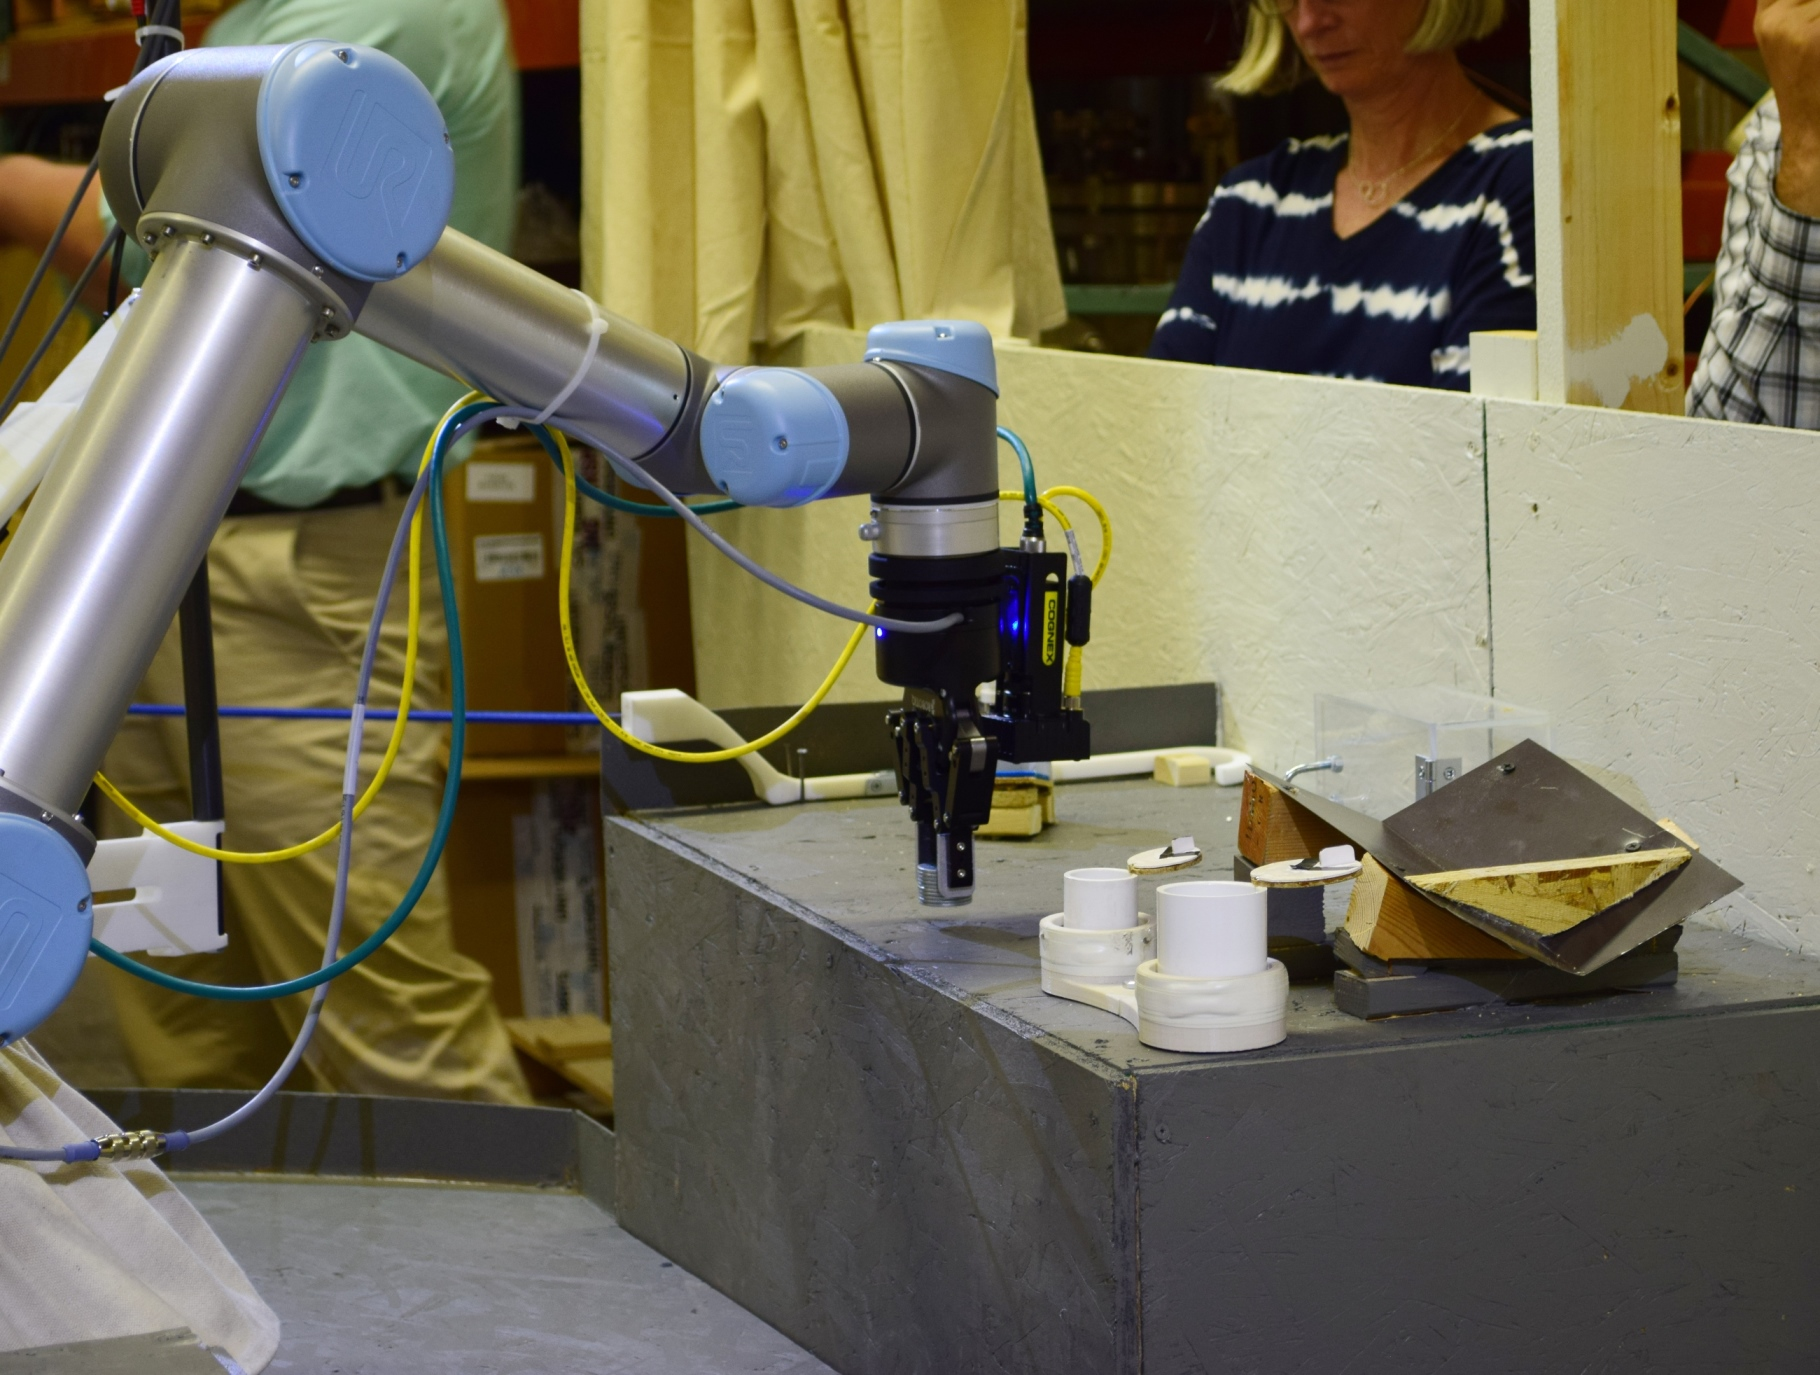 The robot removed the sample from the clear transfer box, out of the two white sample containers, and transported it to the mock-up examination instrument.